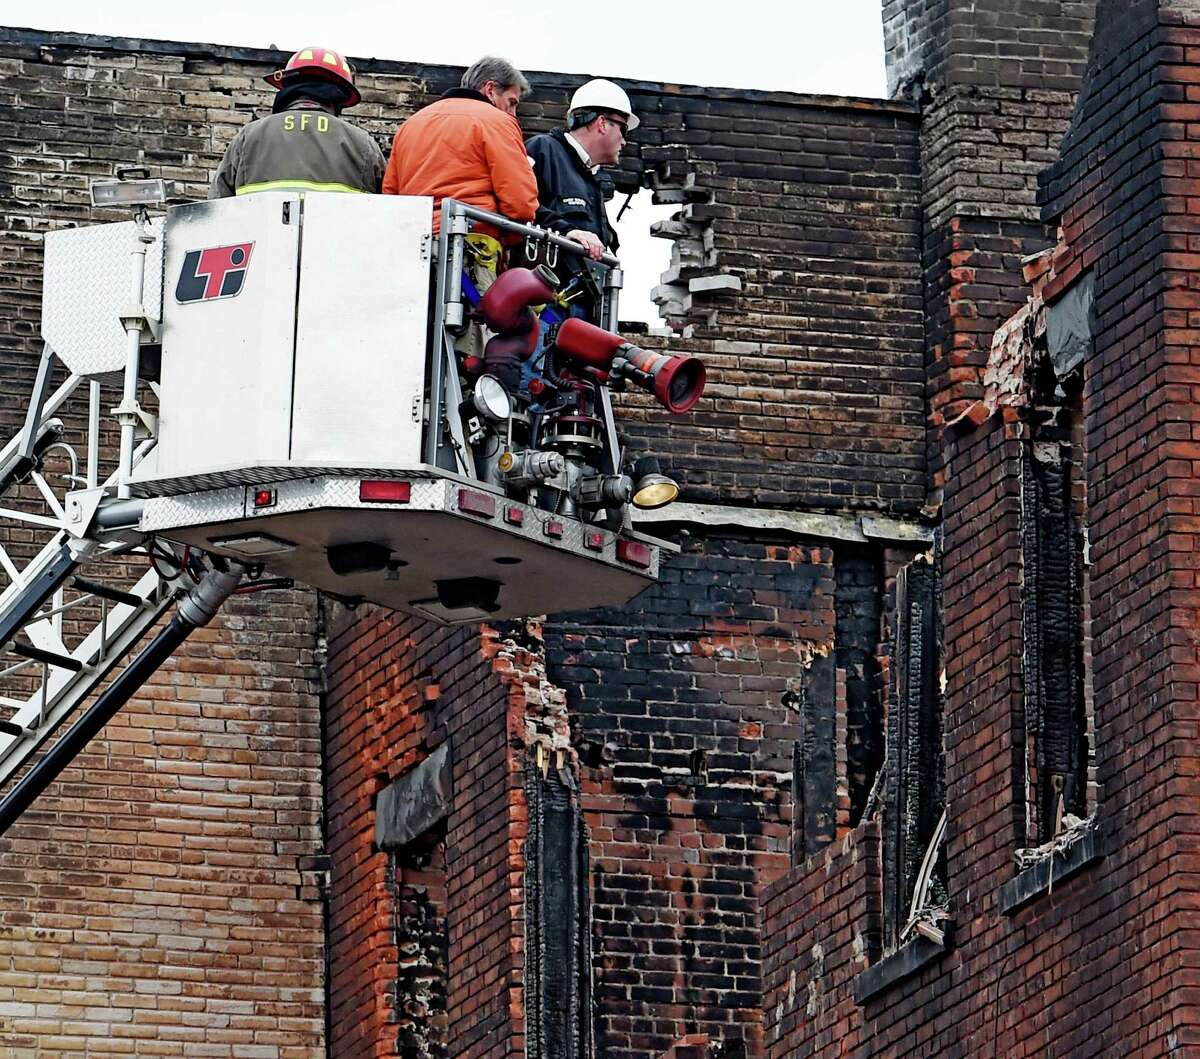 City Building Inspector Eric Schilling, right points toward 104 Jay Street Monday afternoon March 16, 2015, as the investigation continues as to the cause and origin of the fire that took four lives in Schenectady, N.Y. (Skip Dickstein/Times Union)